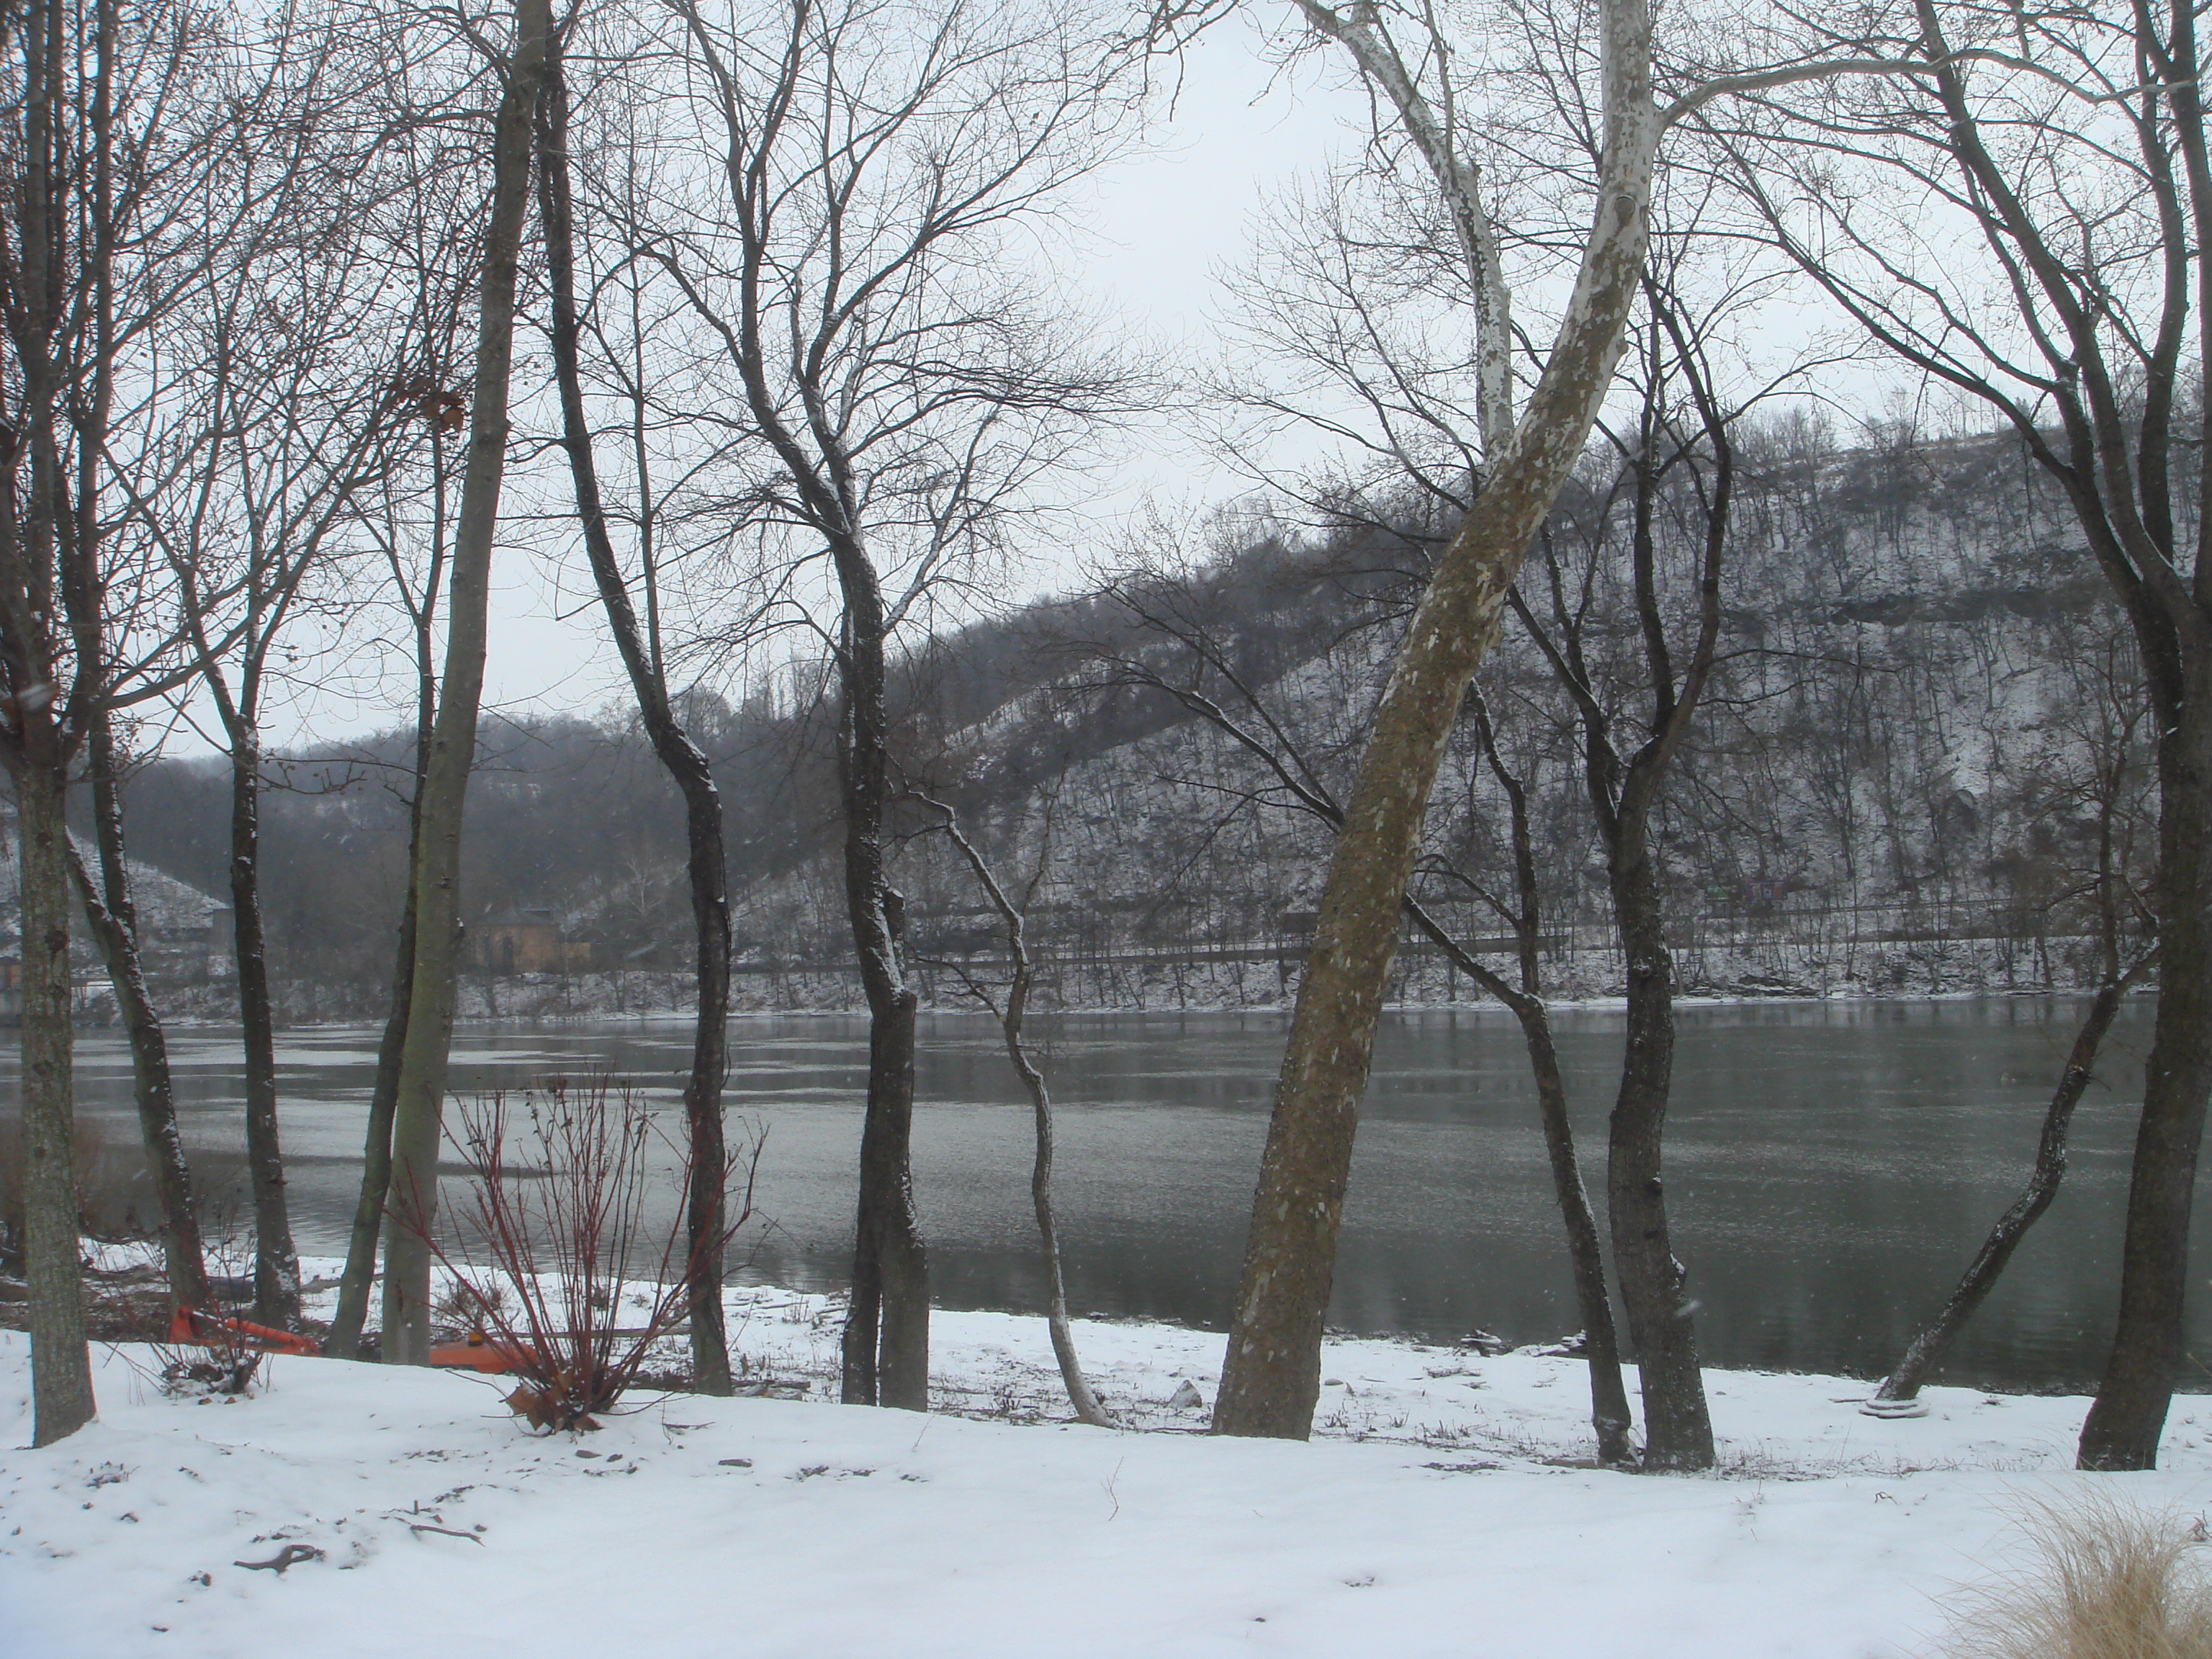 View of the Allegheny River from Chapel Harbor (Photo by Andrew)